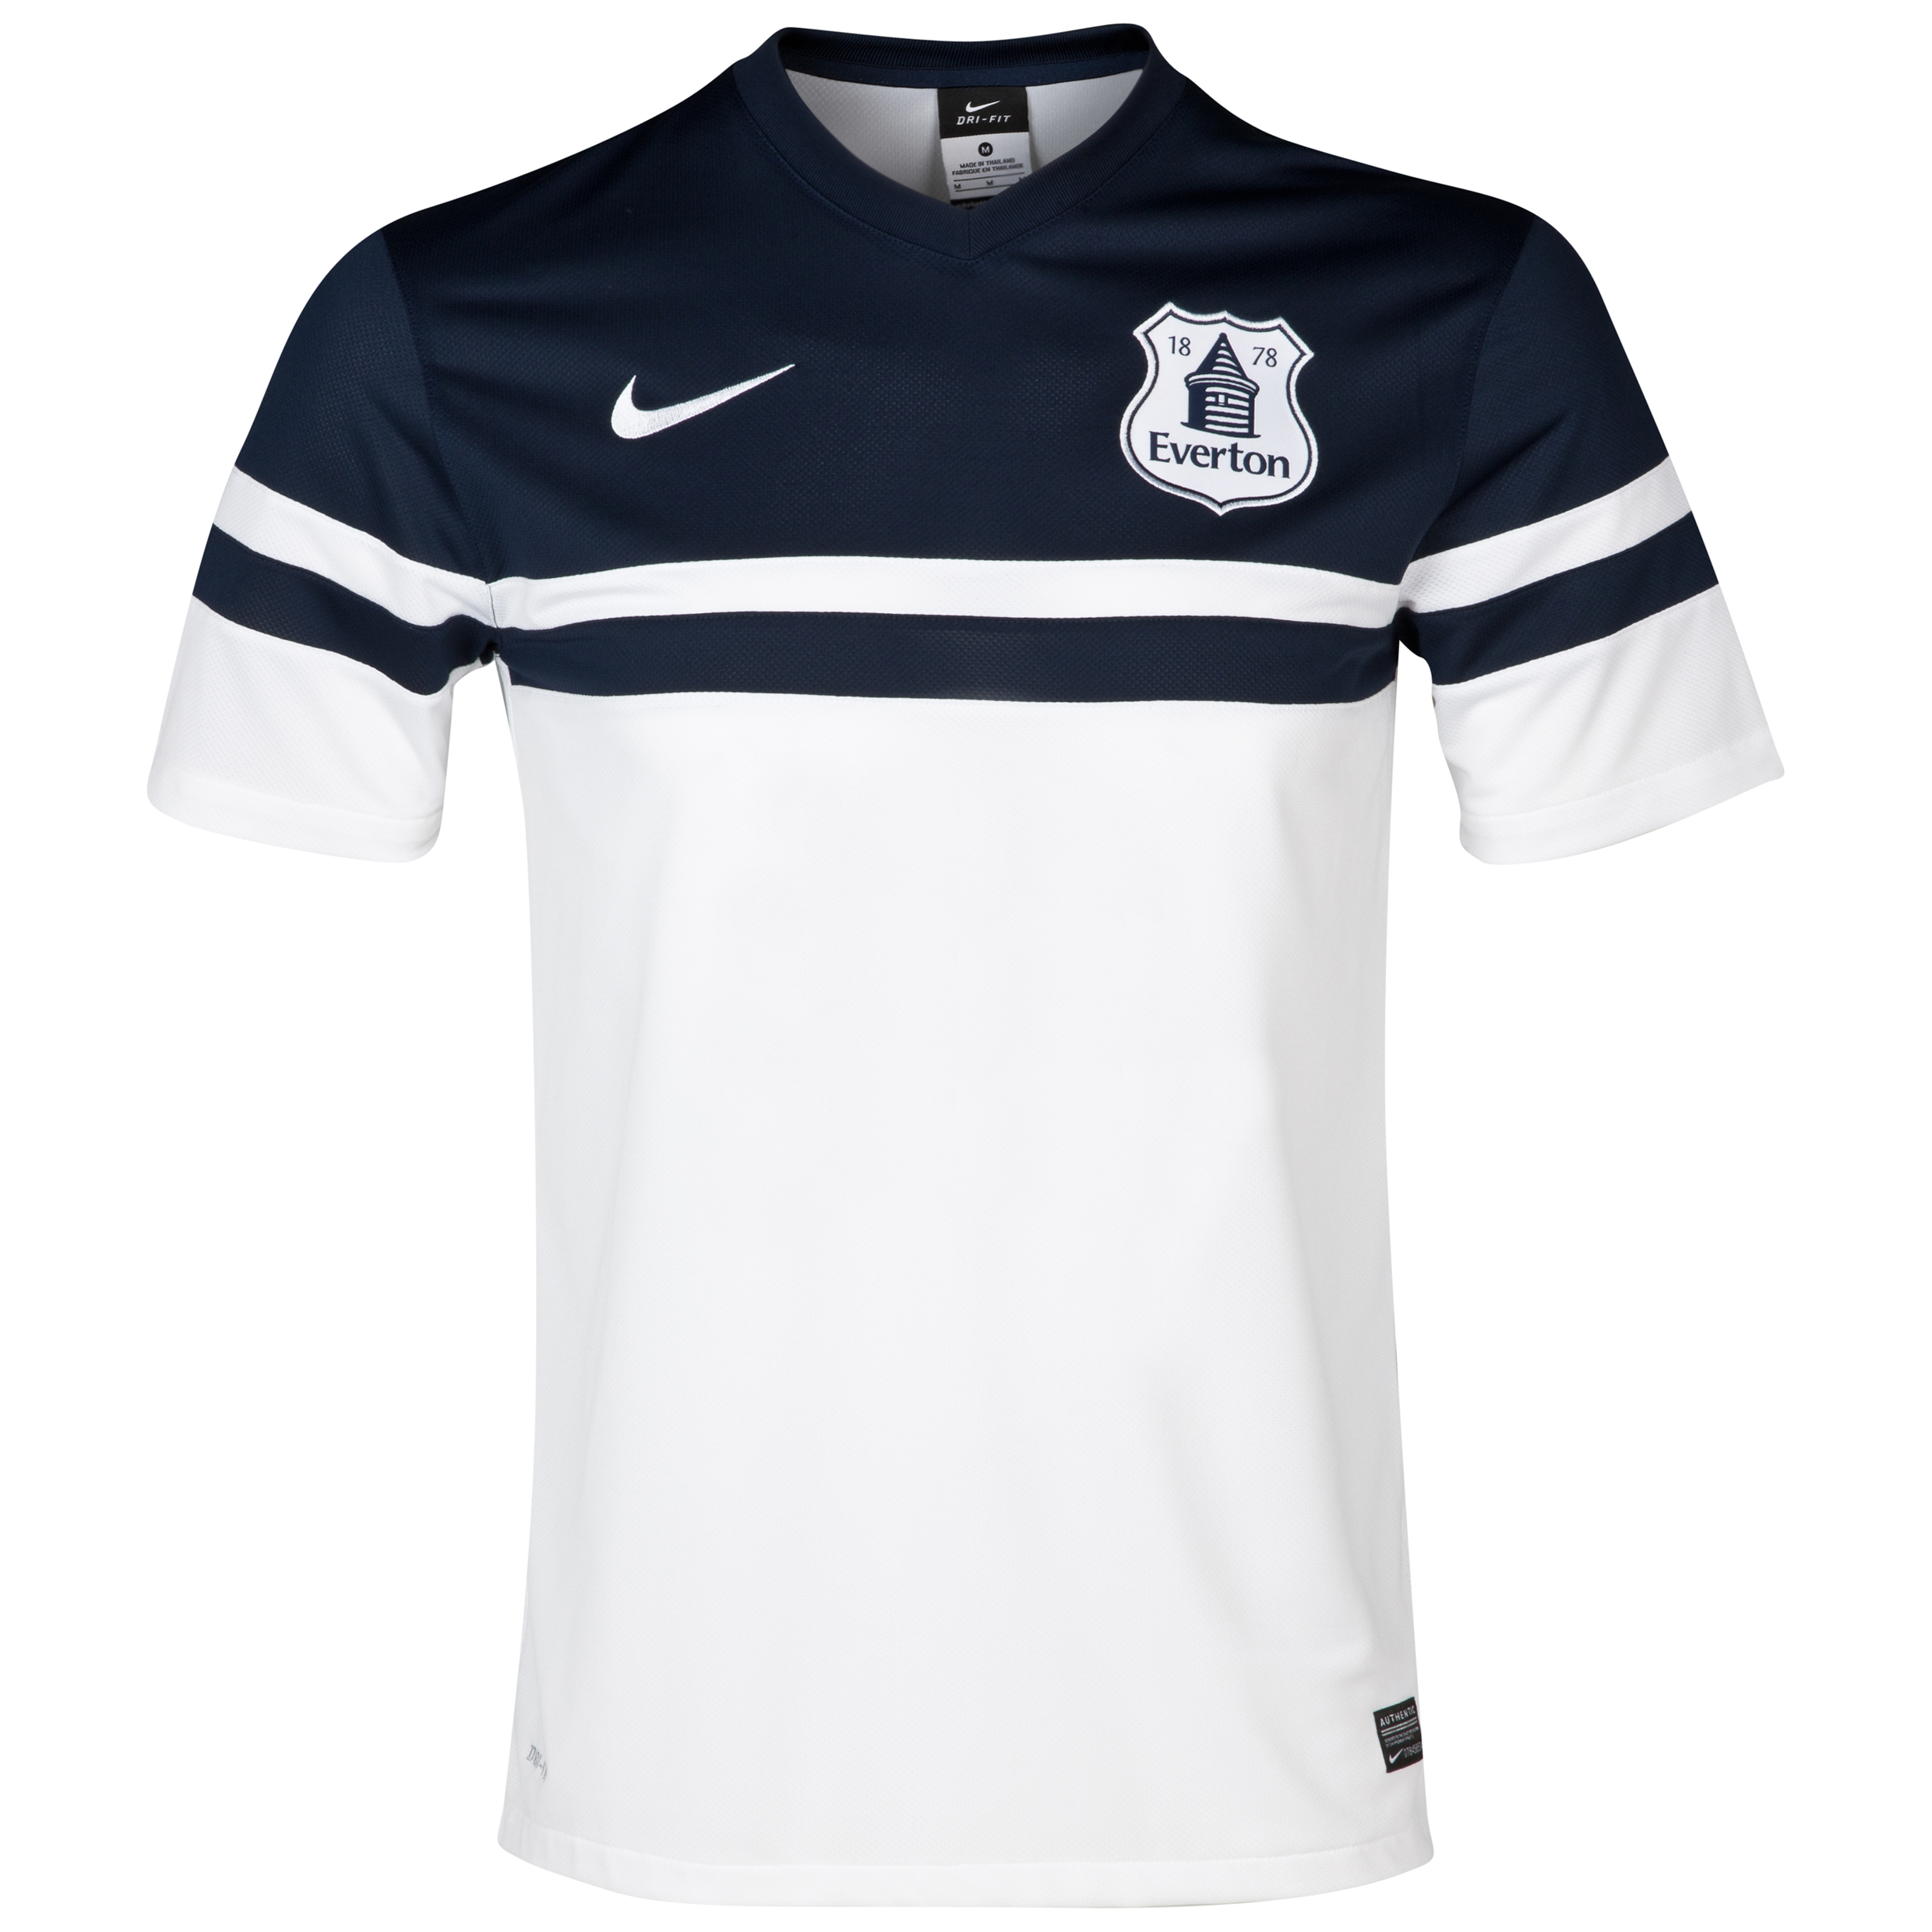 Everton 3rd Shirt 2013/14 - Junior White